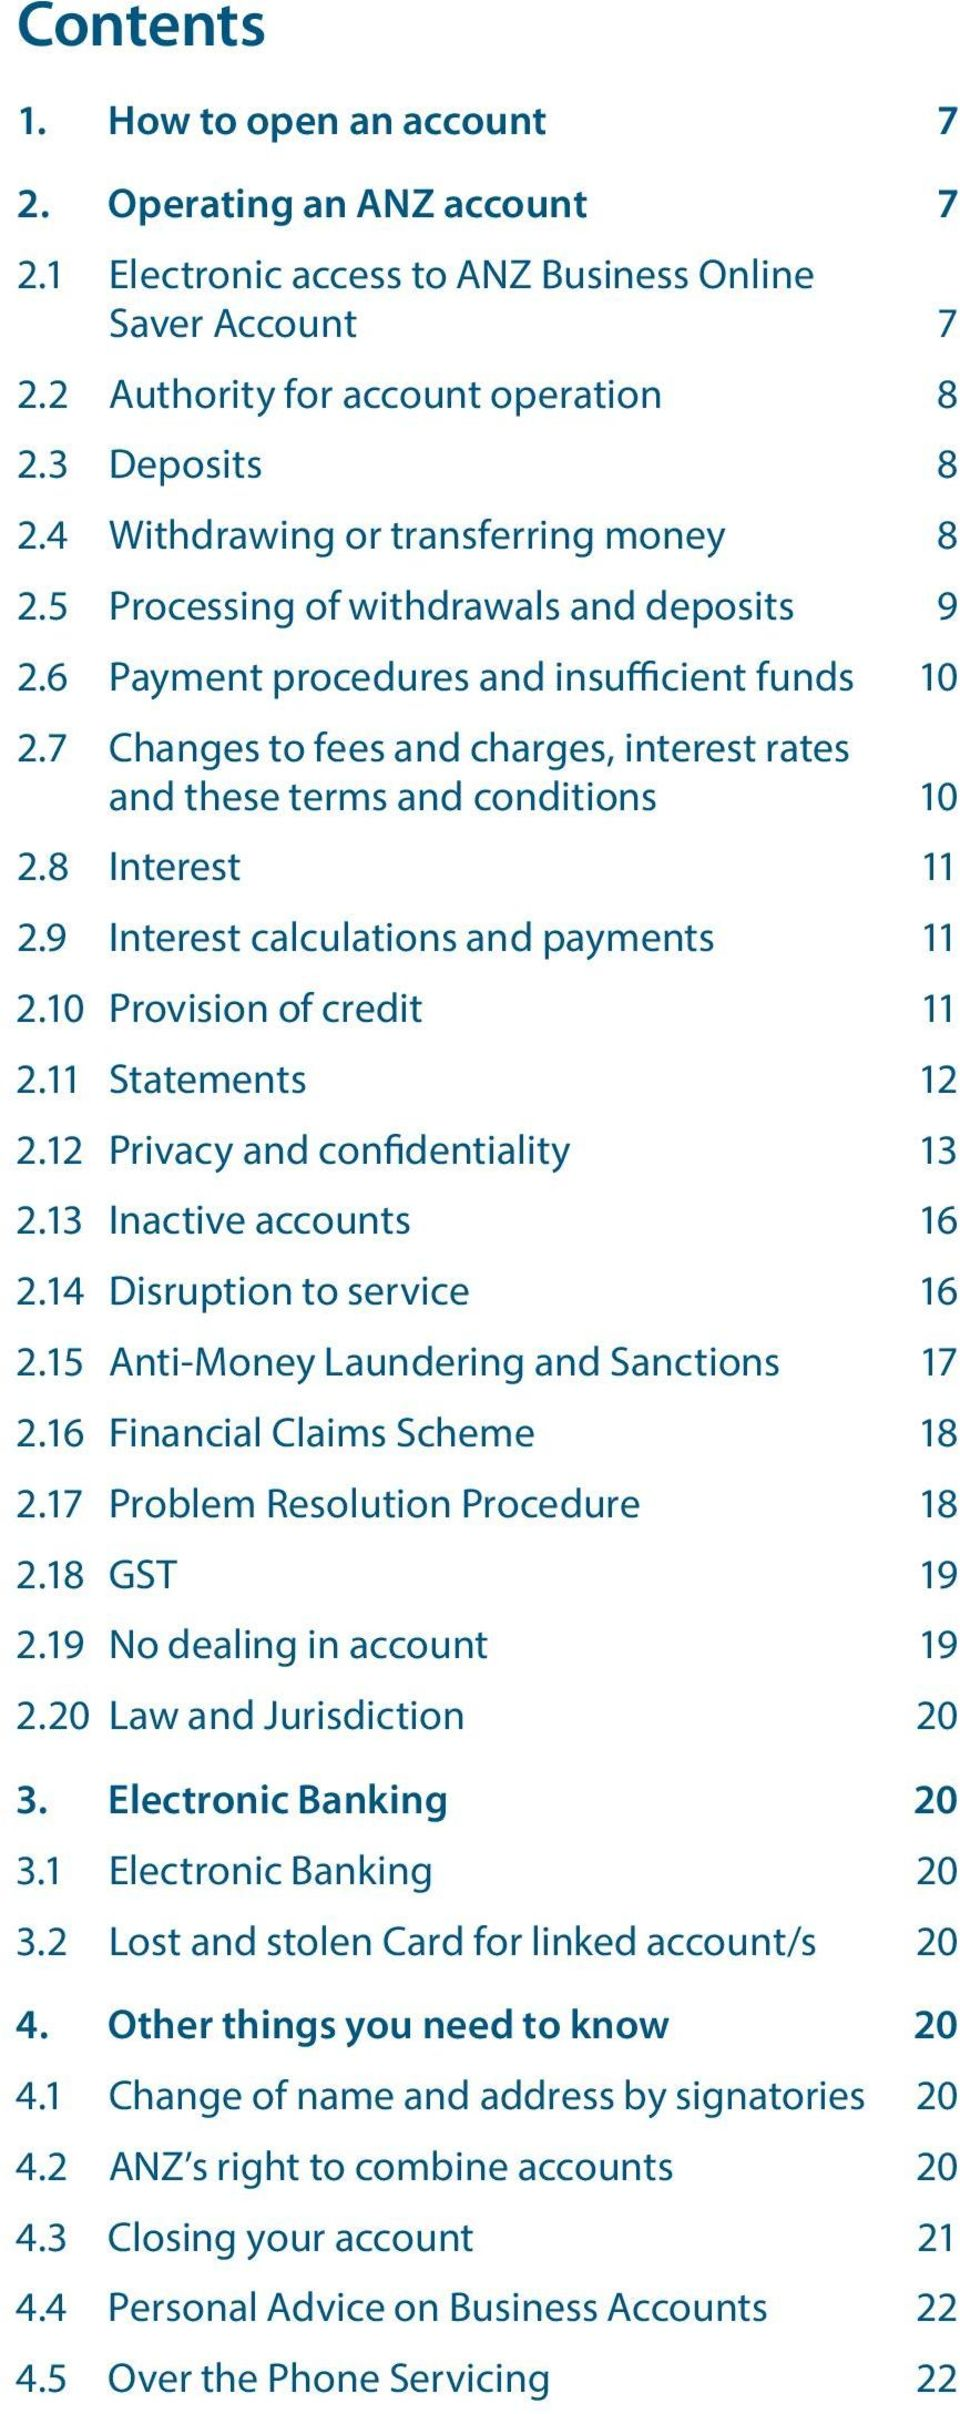 7 Changes to fees and charges, interest rates and these terms and conditions 10 2.8 Interest 11 2.9 Interest calculations and payments 11 2.10 Provision of credit 11 2.11 Statements 12 2.